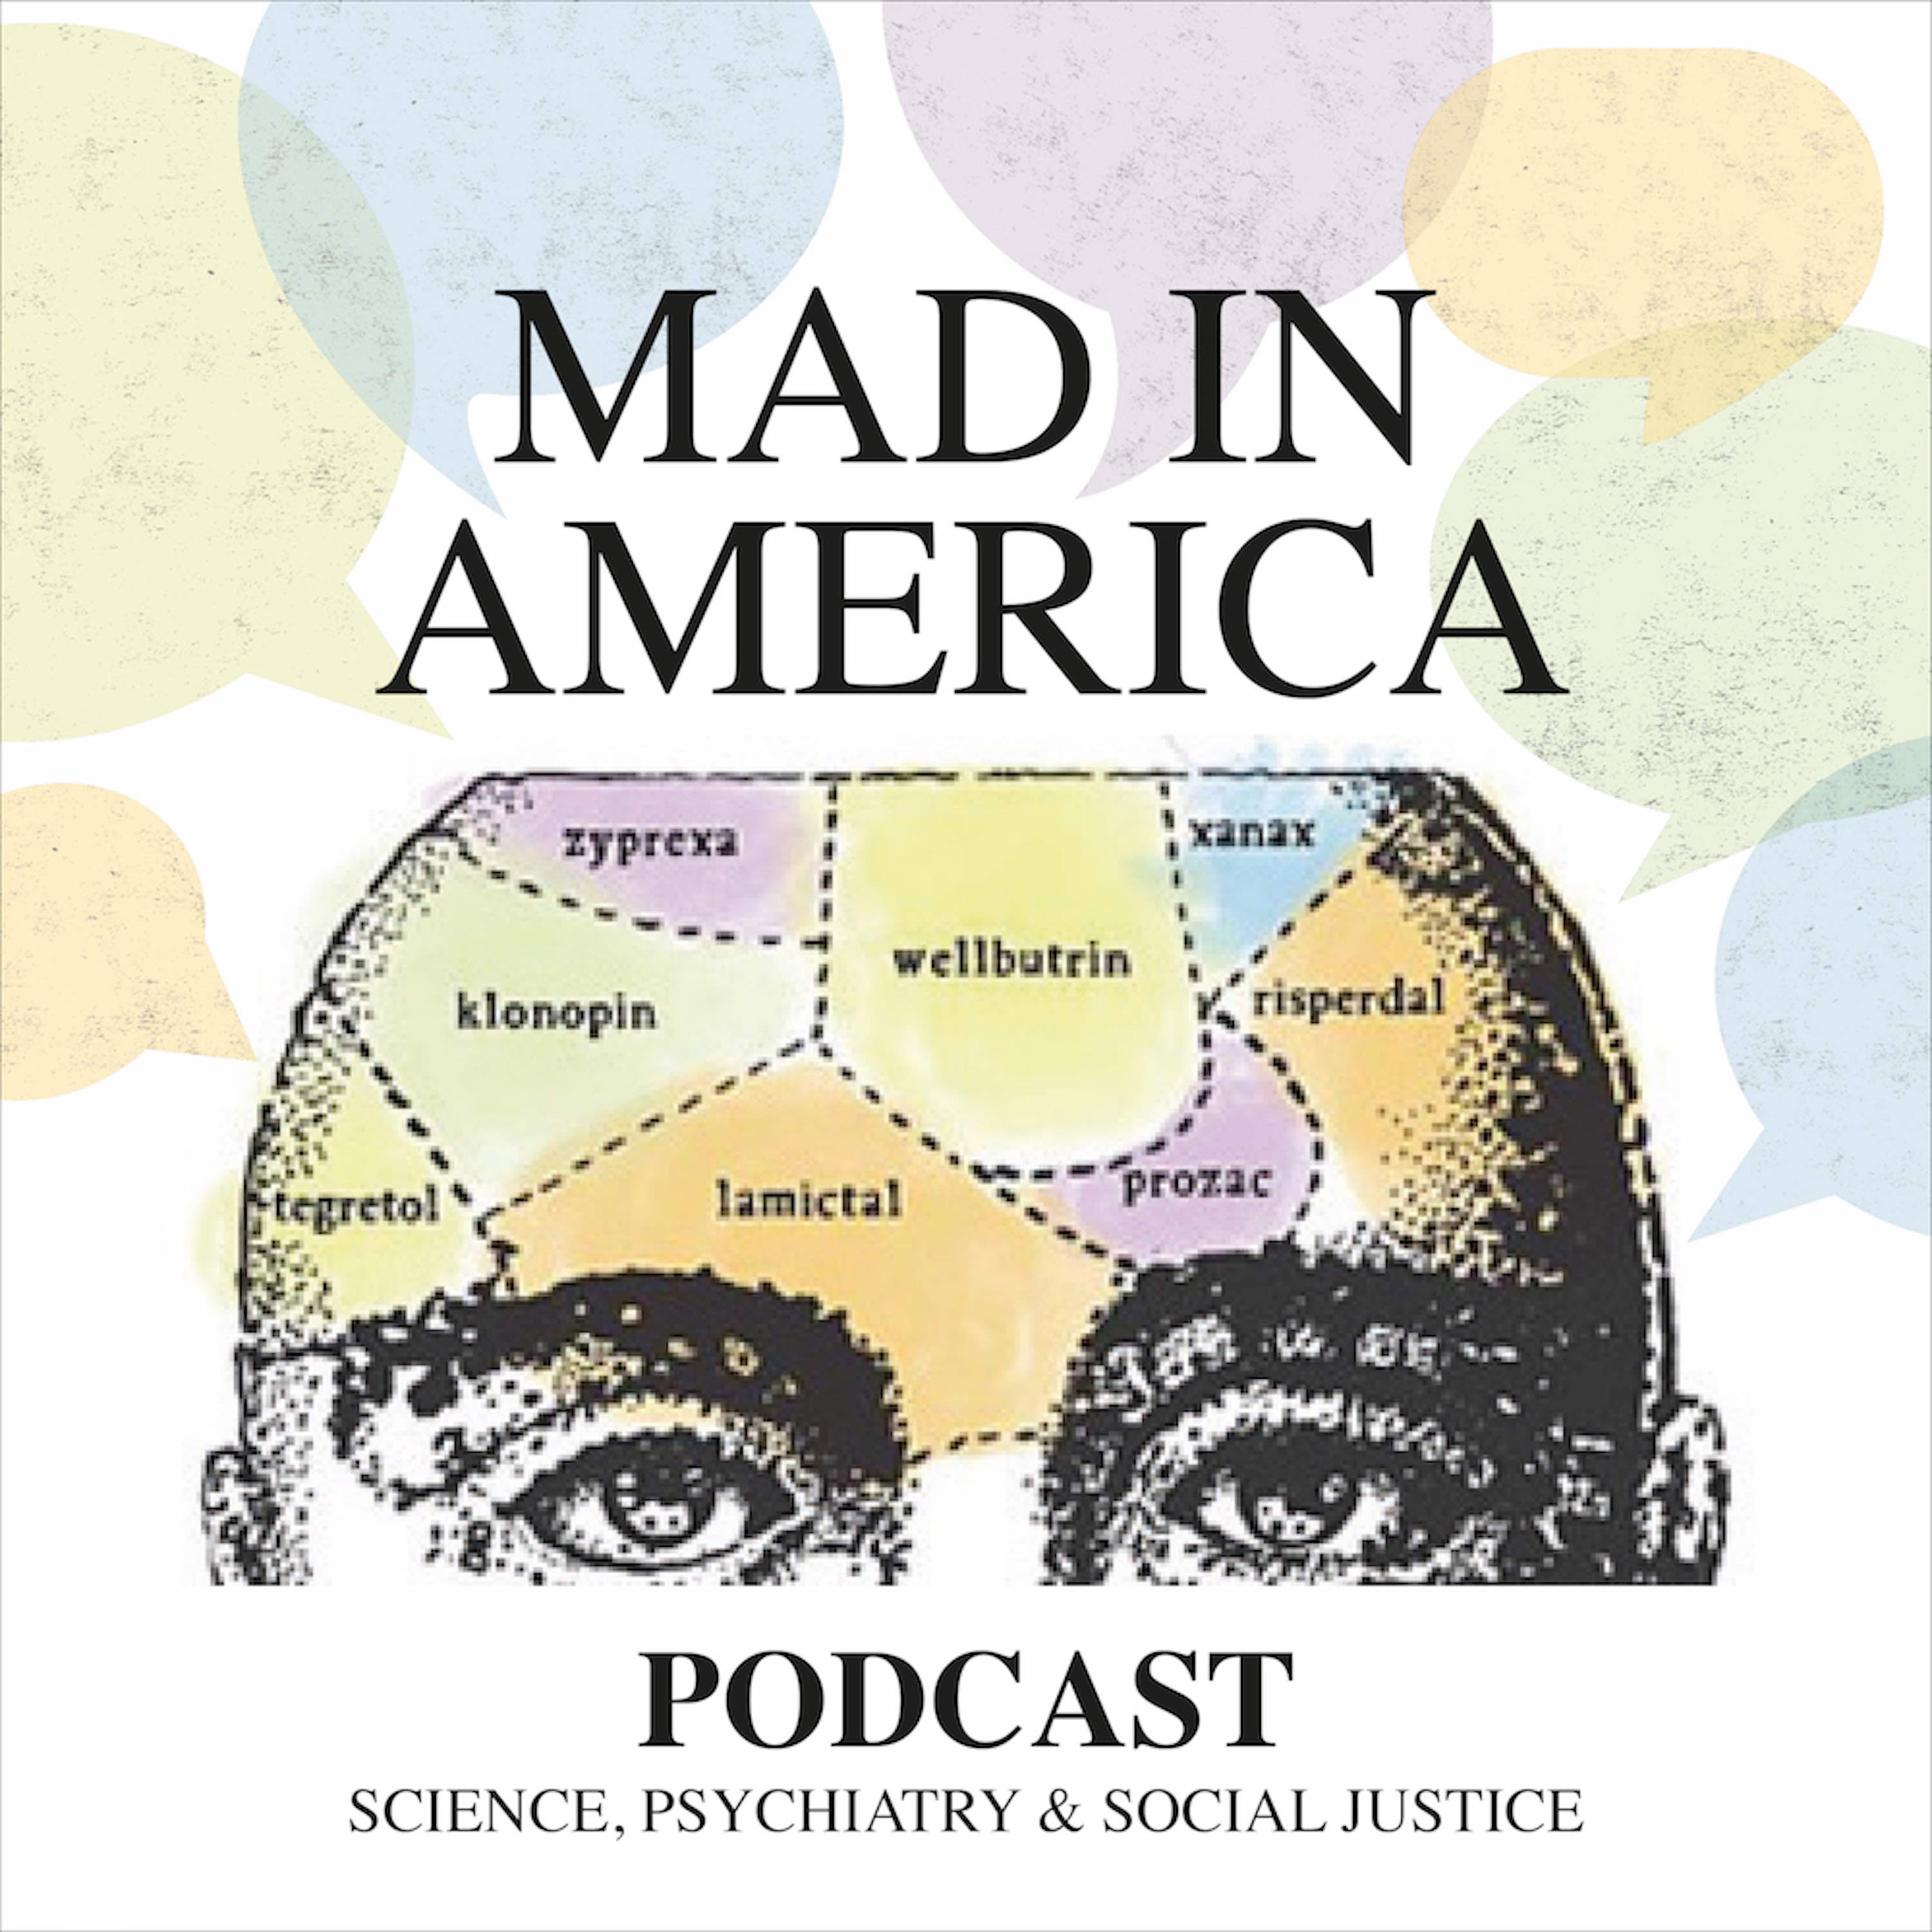 Mad in America: Rethinking Mental Health - Gordon Warme - The Relationship Between Culture and Psychiatric 'Disorders'